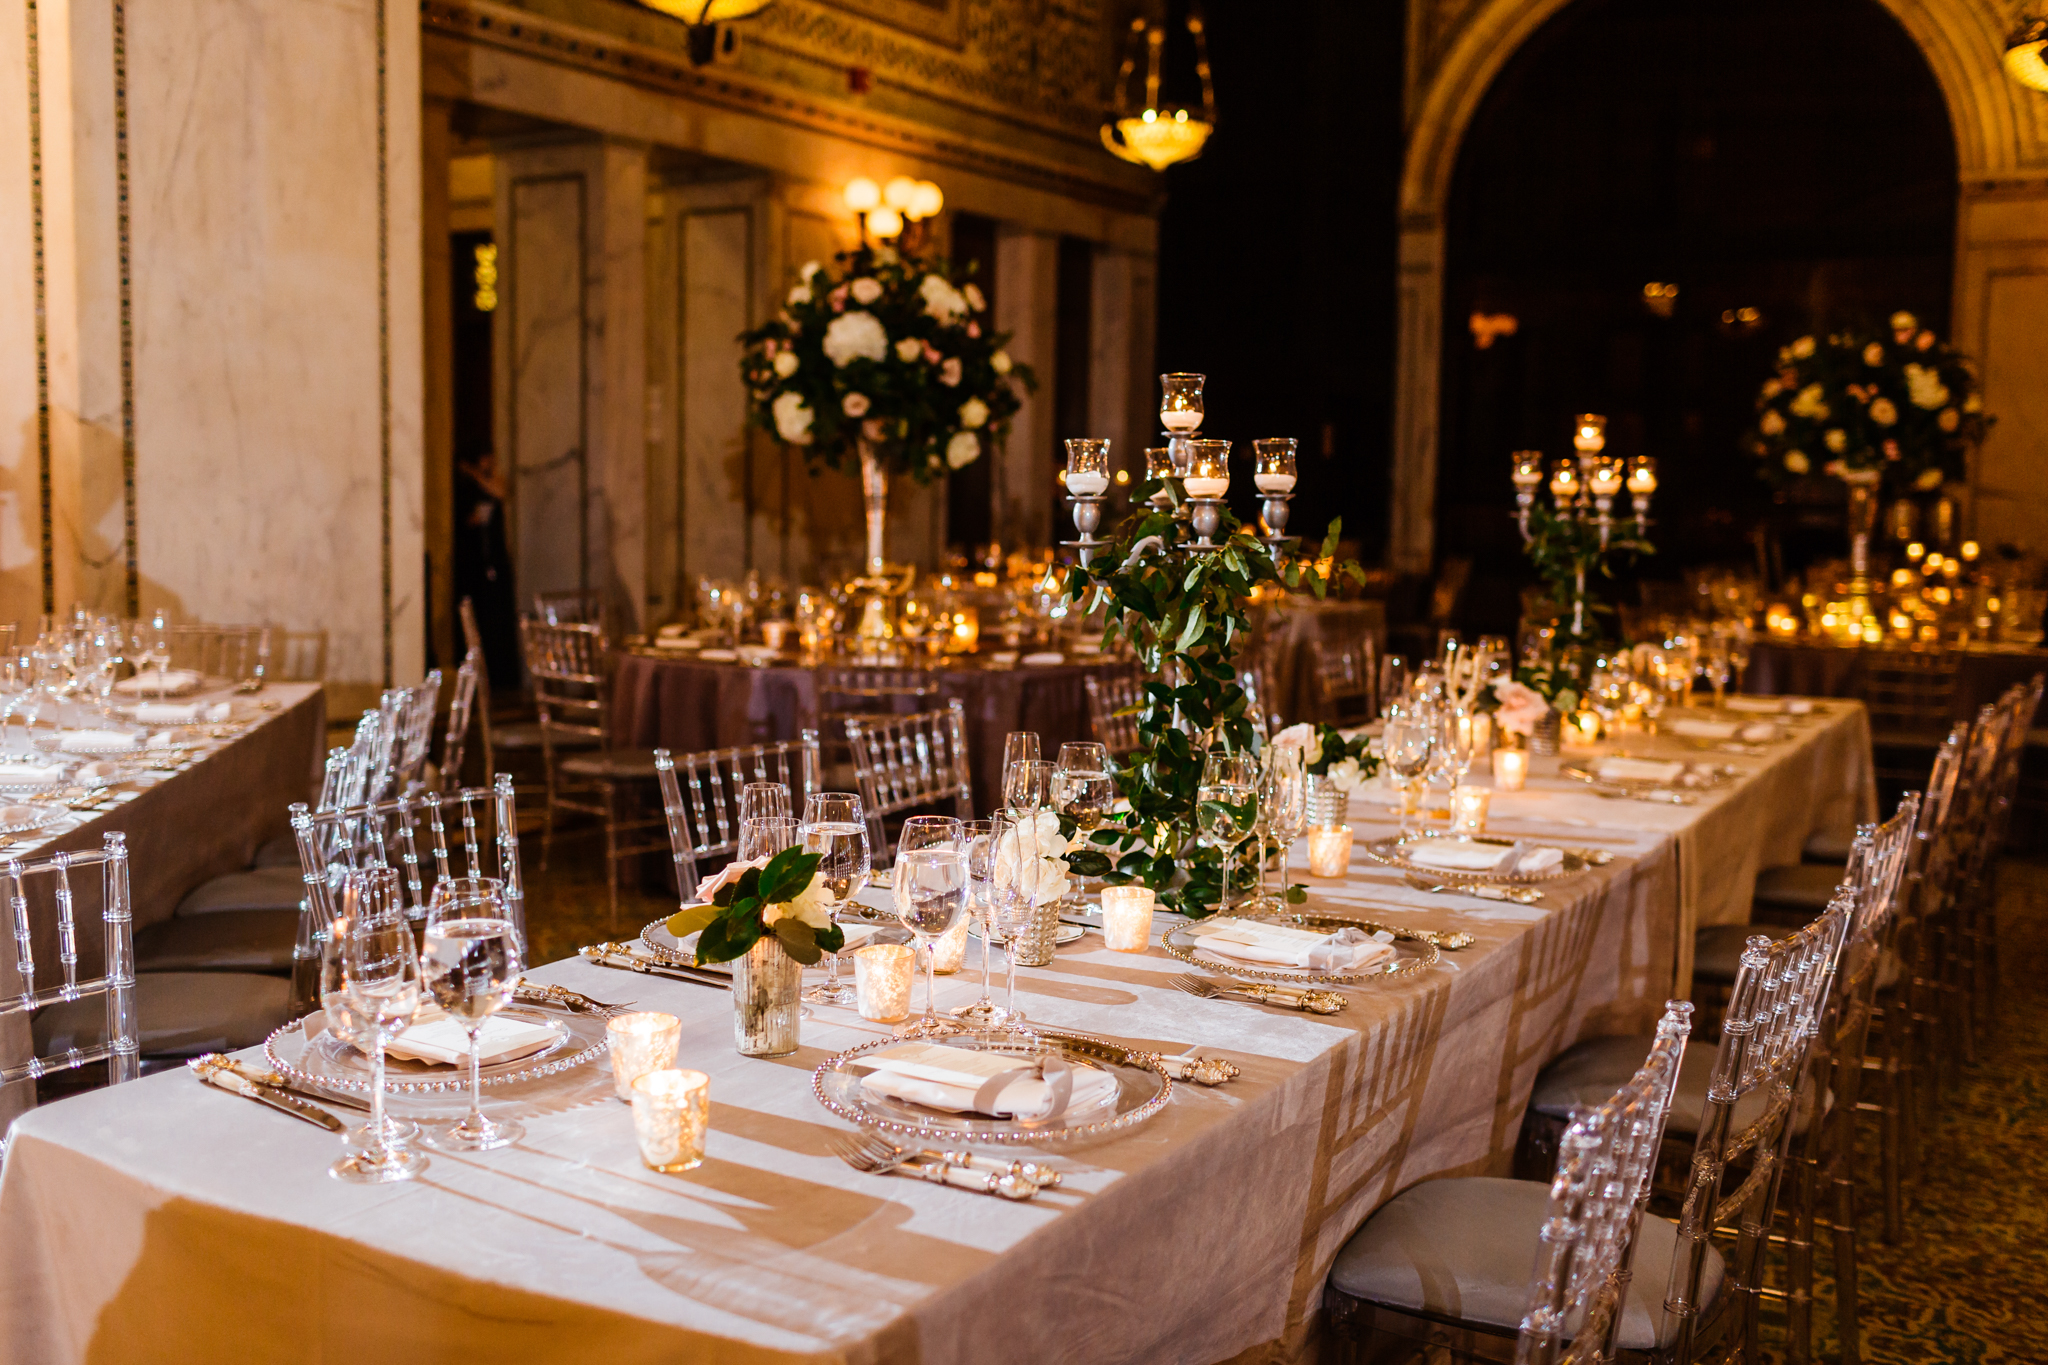 Room view with different centerpieces